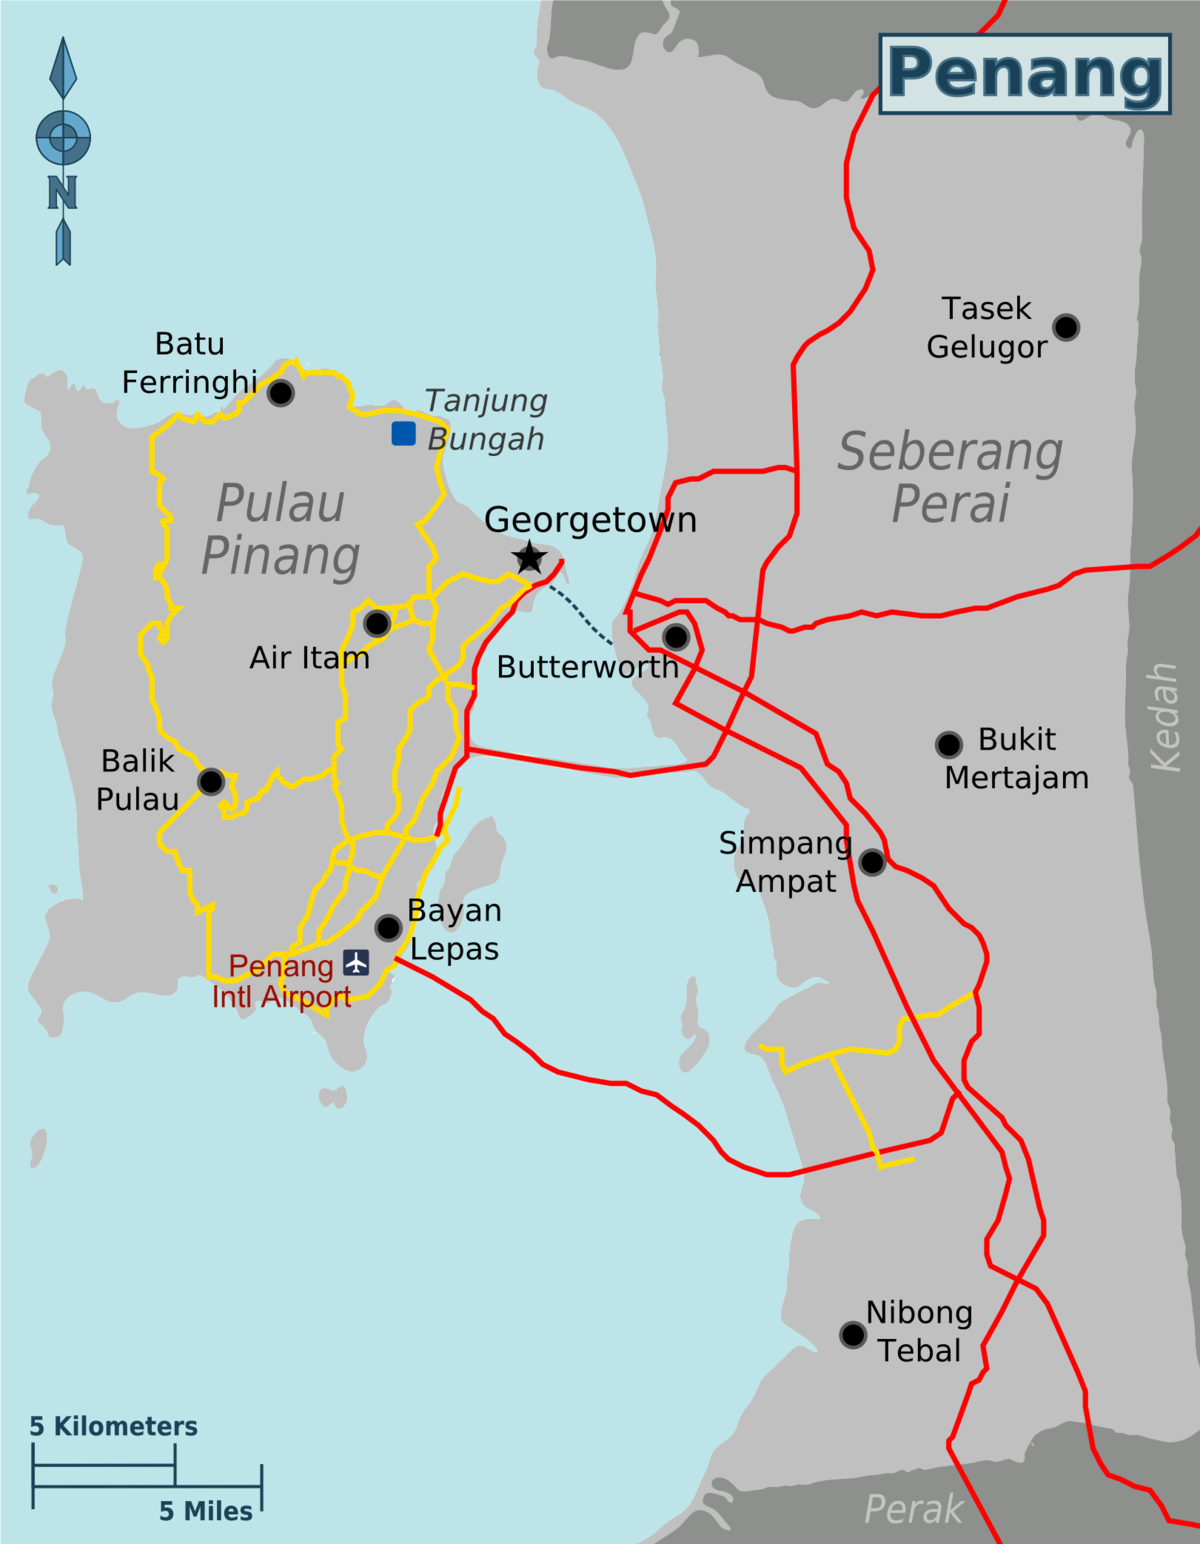 Map of the State of Penang, Malaysia